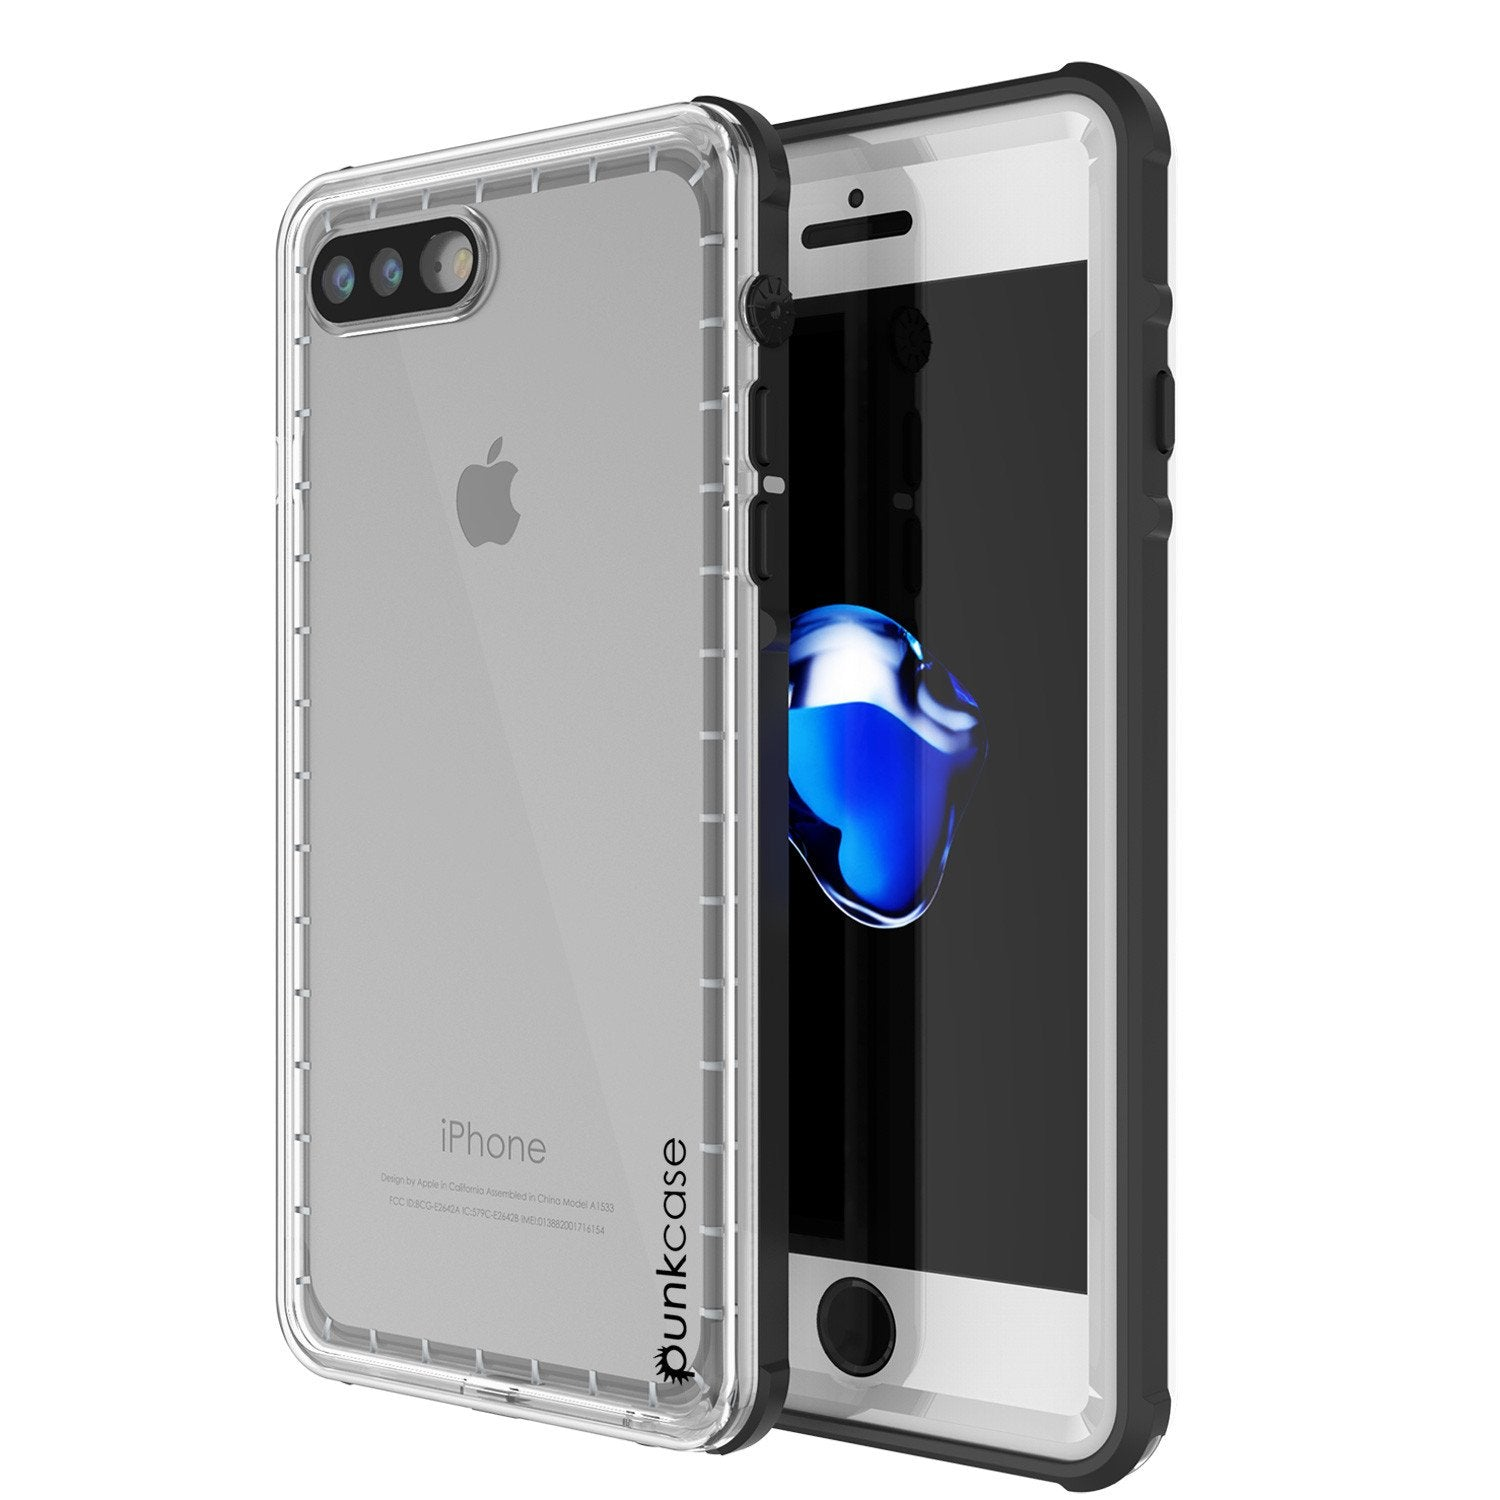 iPhone 7+ Plus Waterproof Case, PUNKcase CRYSTAL White W/ Attached Screen Protector  | Warranty